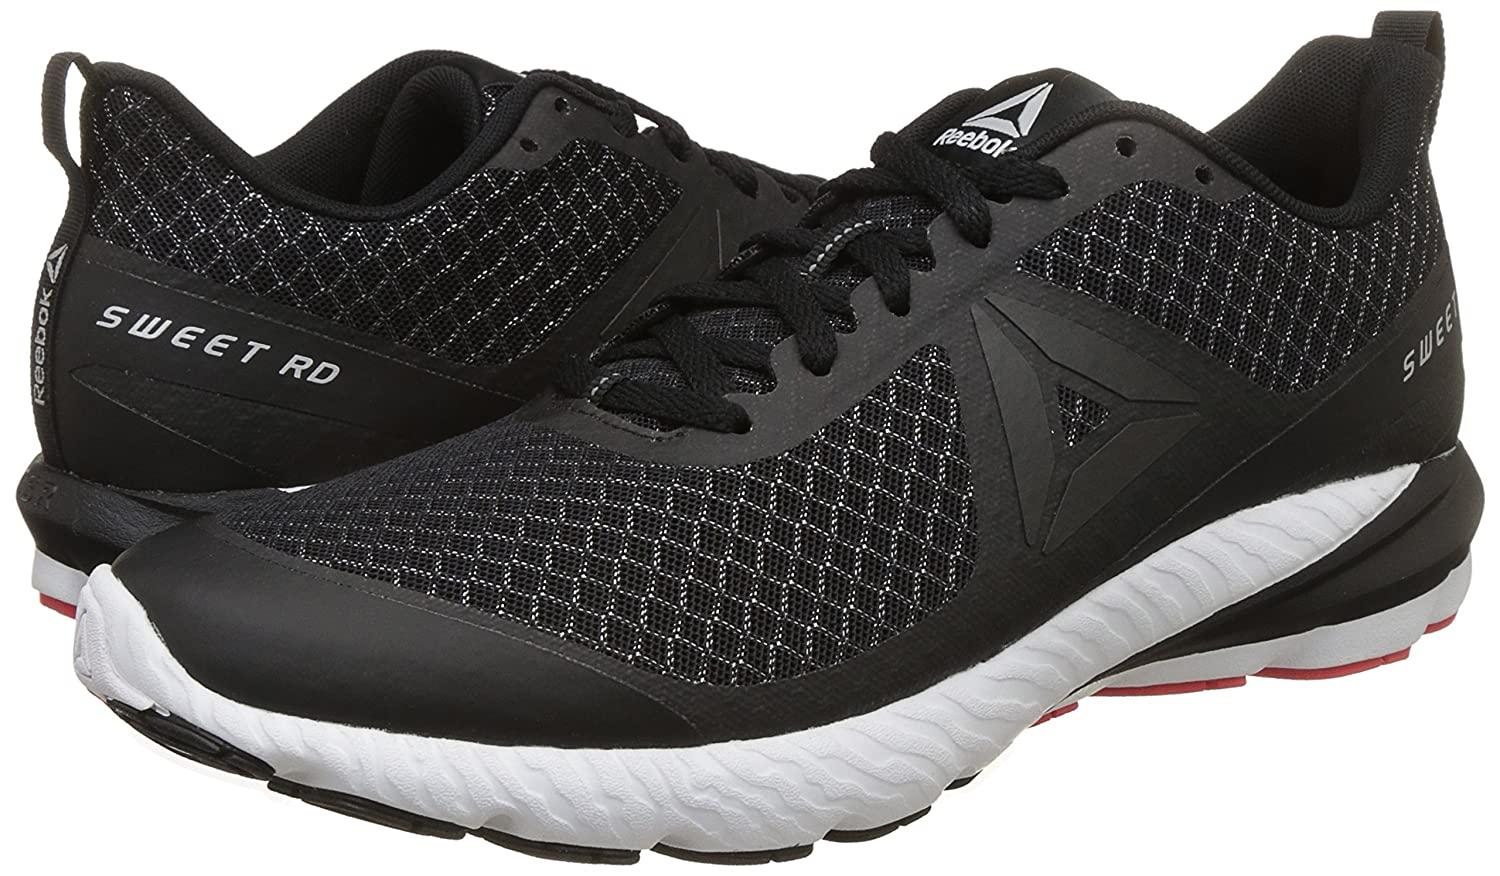 OSR Sweet RD Se, Chaussures de Running Homme, Multicolore-Noir/Anthracite/Blanc/Rouge (Black/Coal/White/Dayglow Red), 45.5 EUReebok